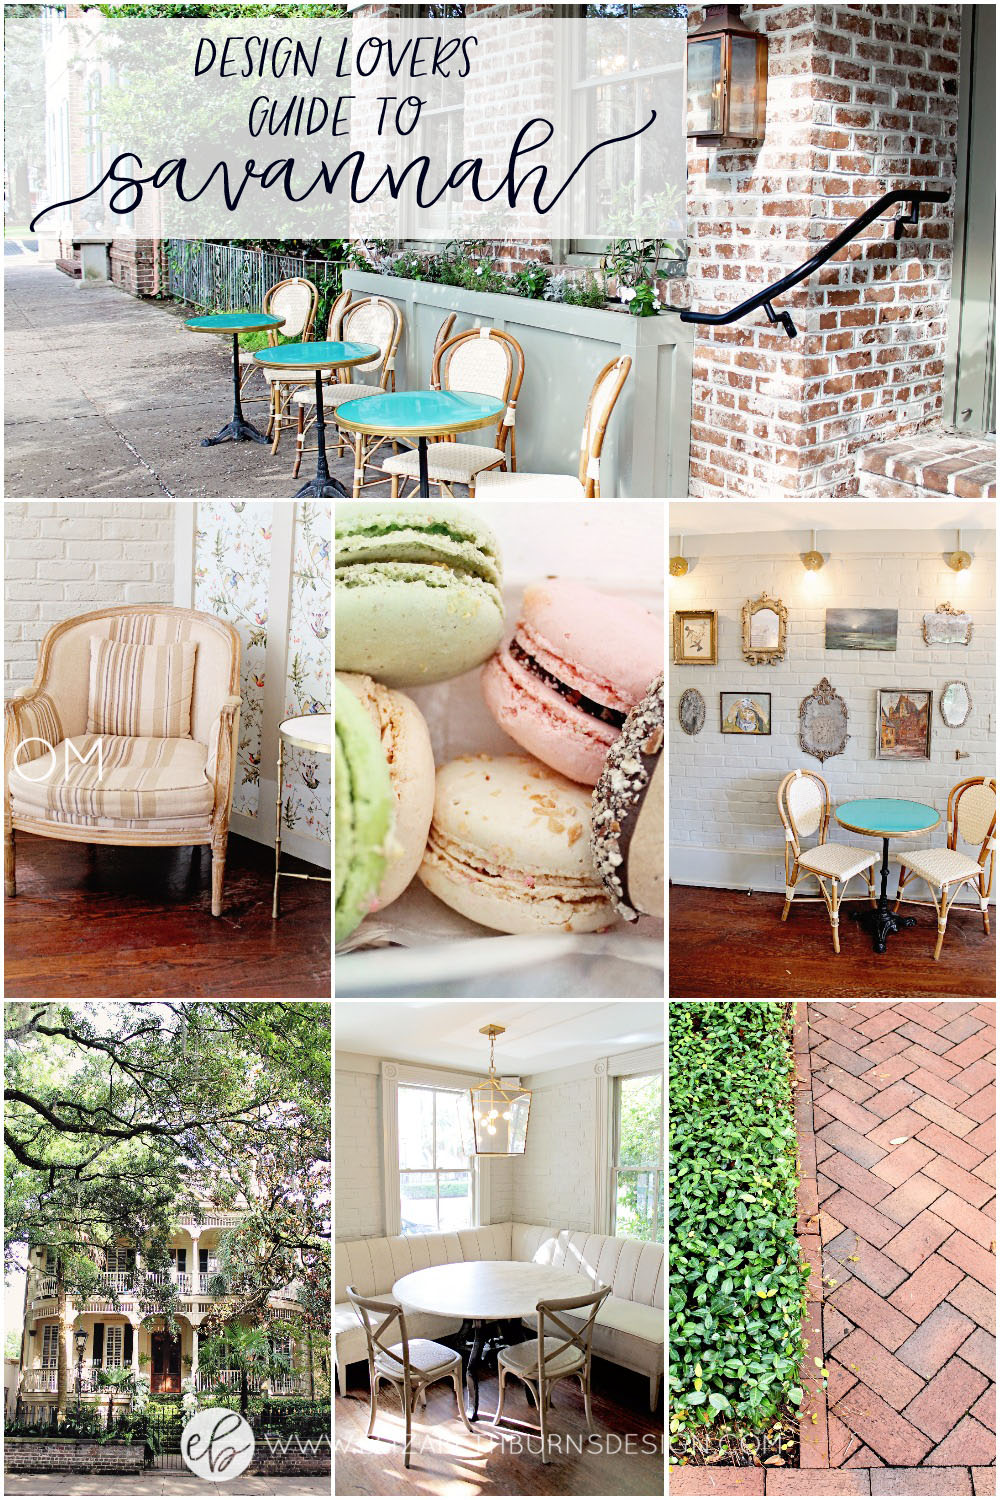 A design lover's guide to Savannah, GA | pretty places to eat, shop, and visit in Savannah